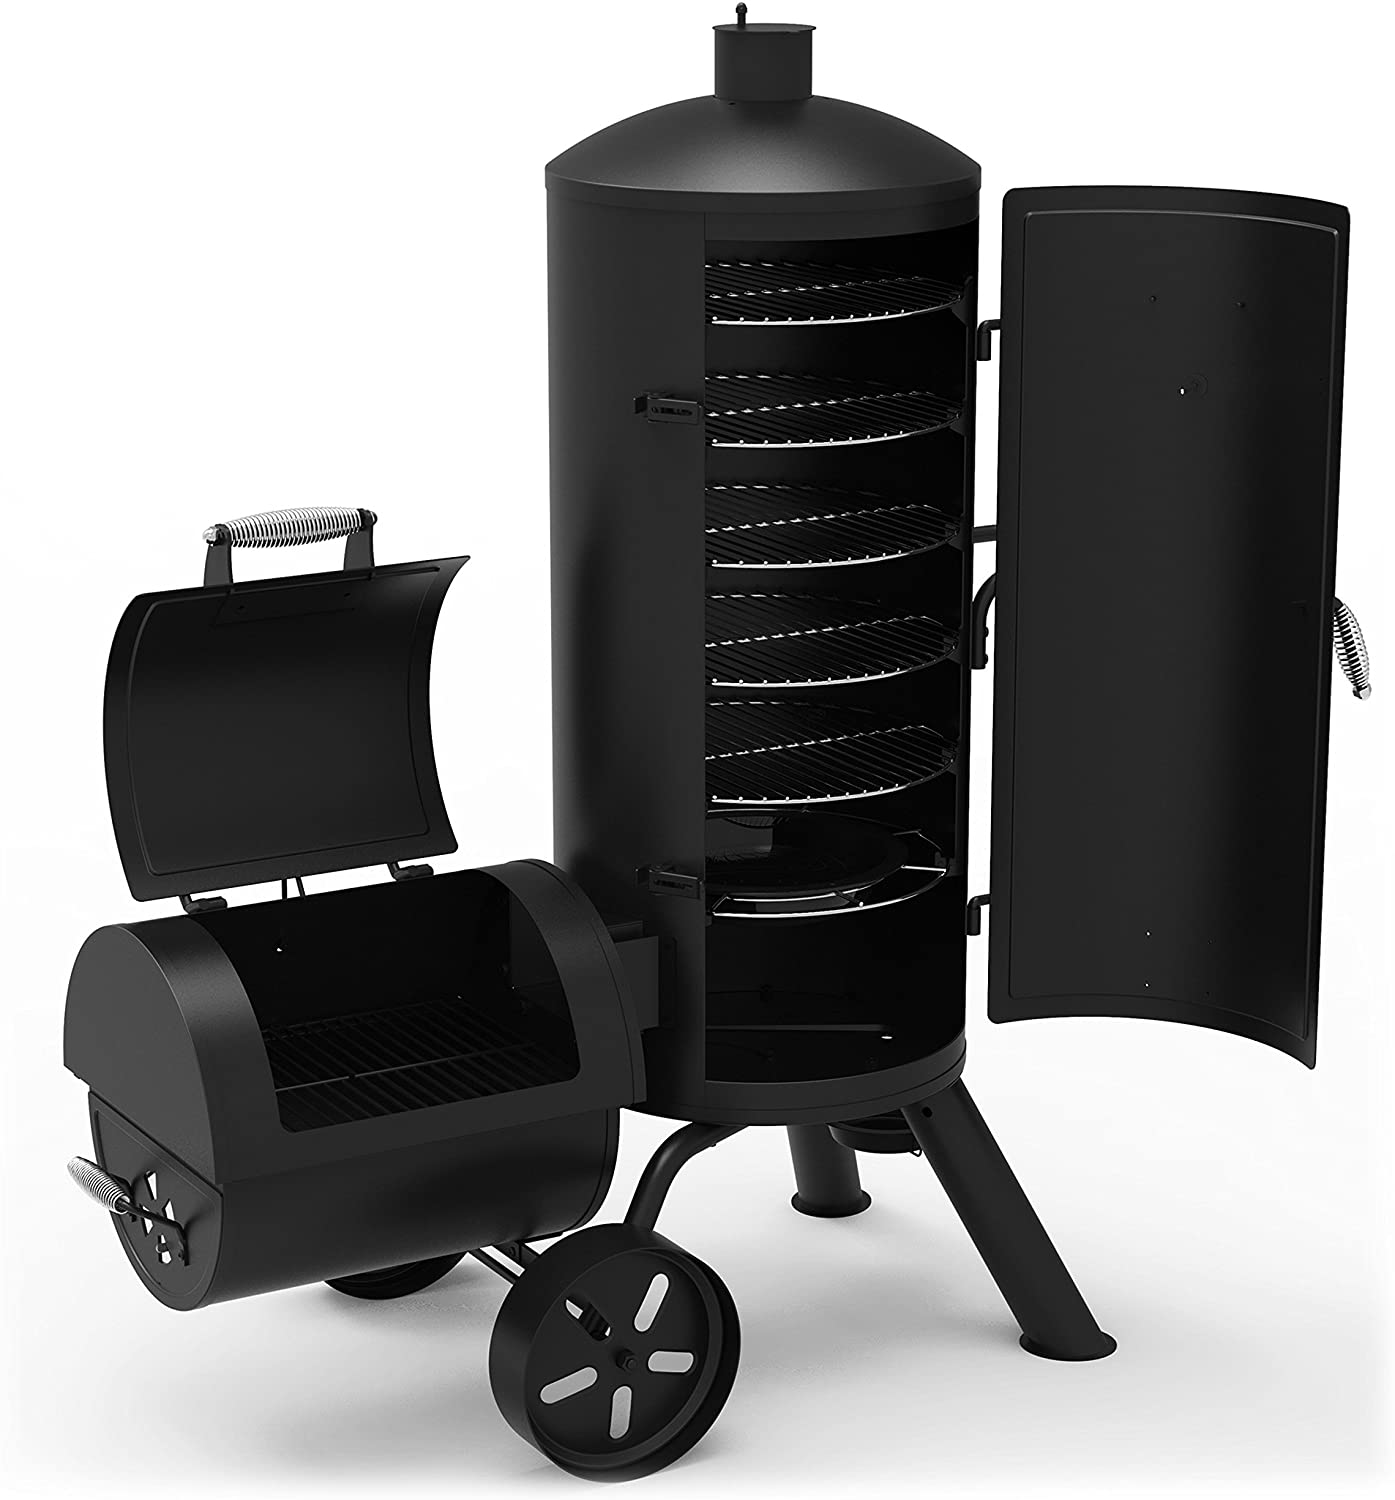 Dyna-Glo Signature Series DGSS1382VCS-D Heavy-Duty Vertical Offset Charcoal Smoker & Grill review